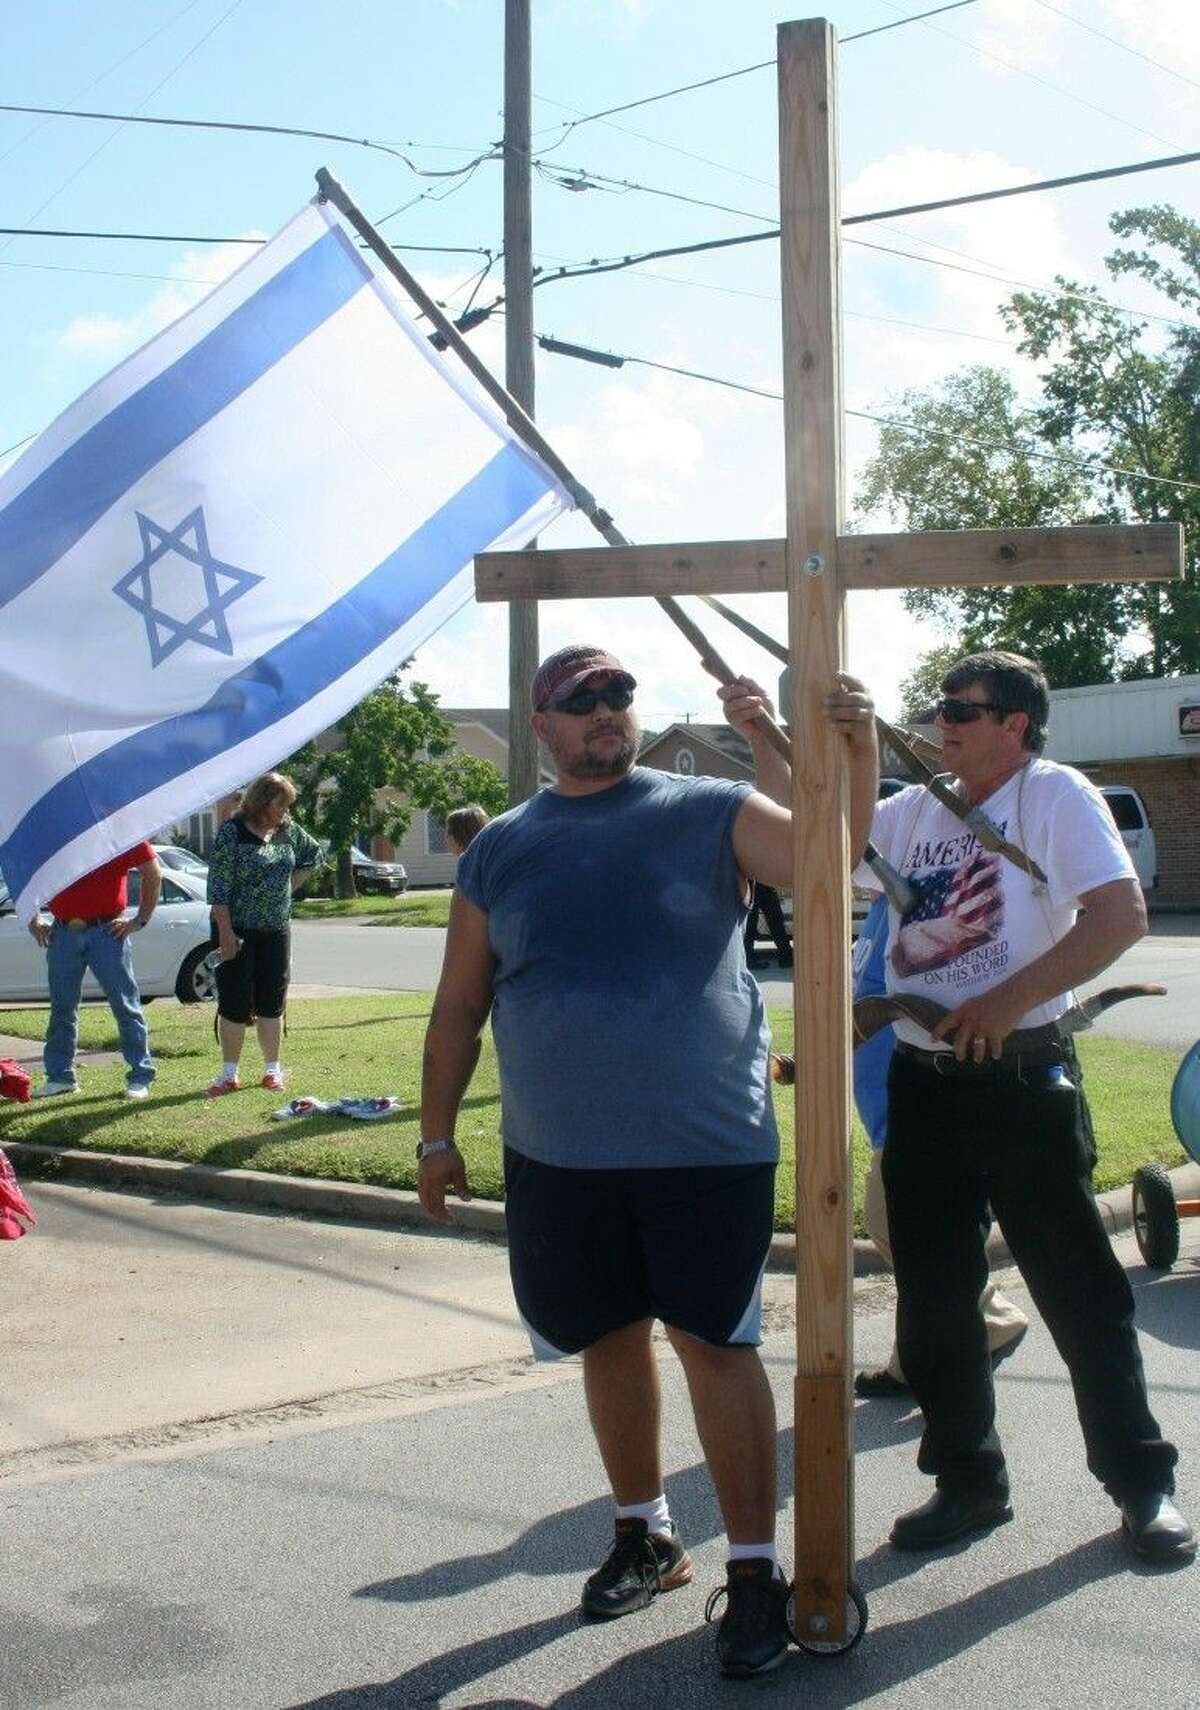 Ken Baker, who is a part of the Covenant with Christ Ministry and Cornerstone Church, carried a cross during the Rally for Israel march, which traveled through Cleveland on Aug. 23.